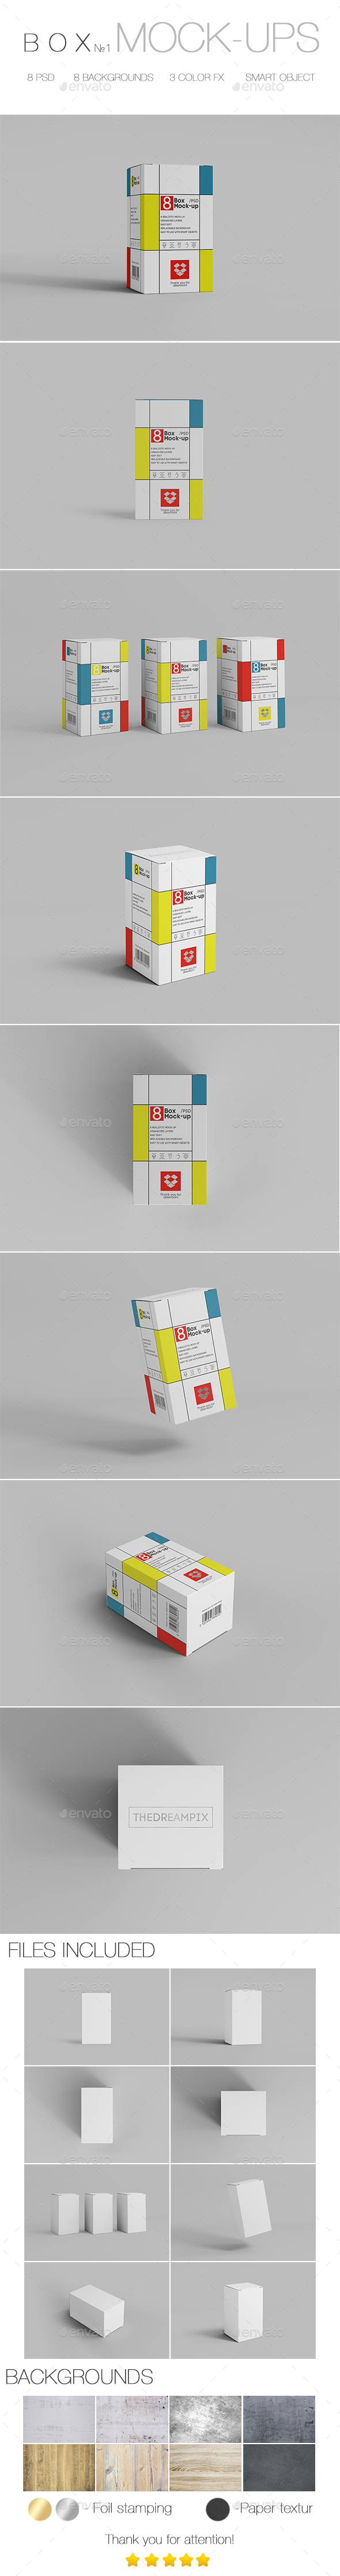 Box Mock-up №1 - Miscellaneous Packaging